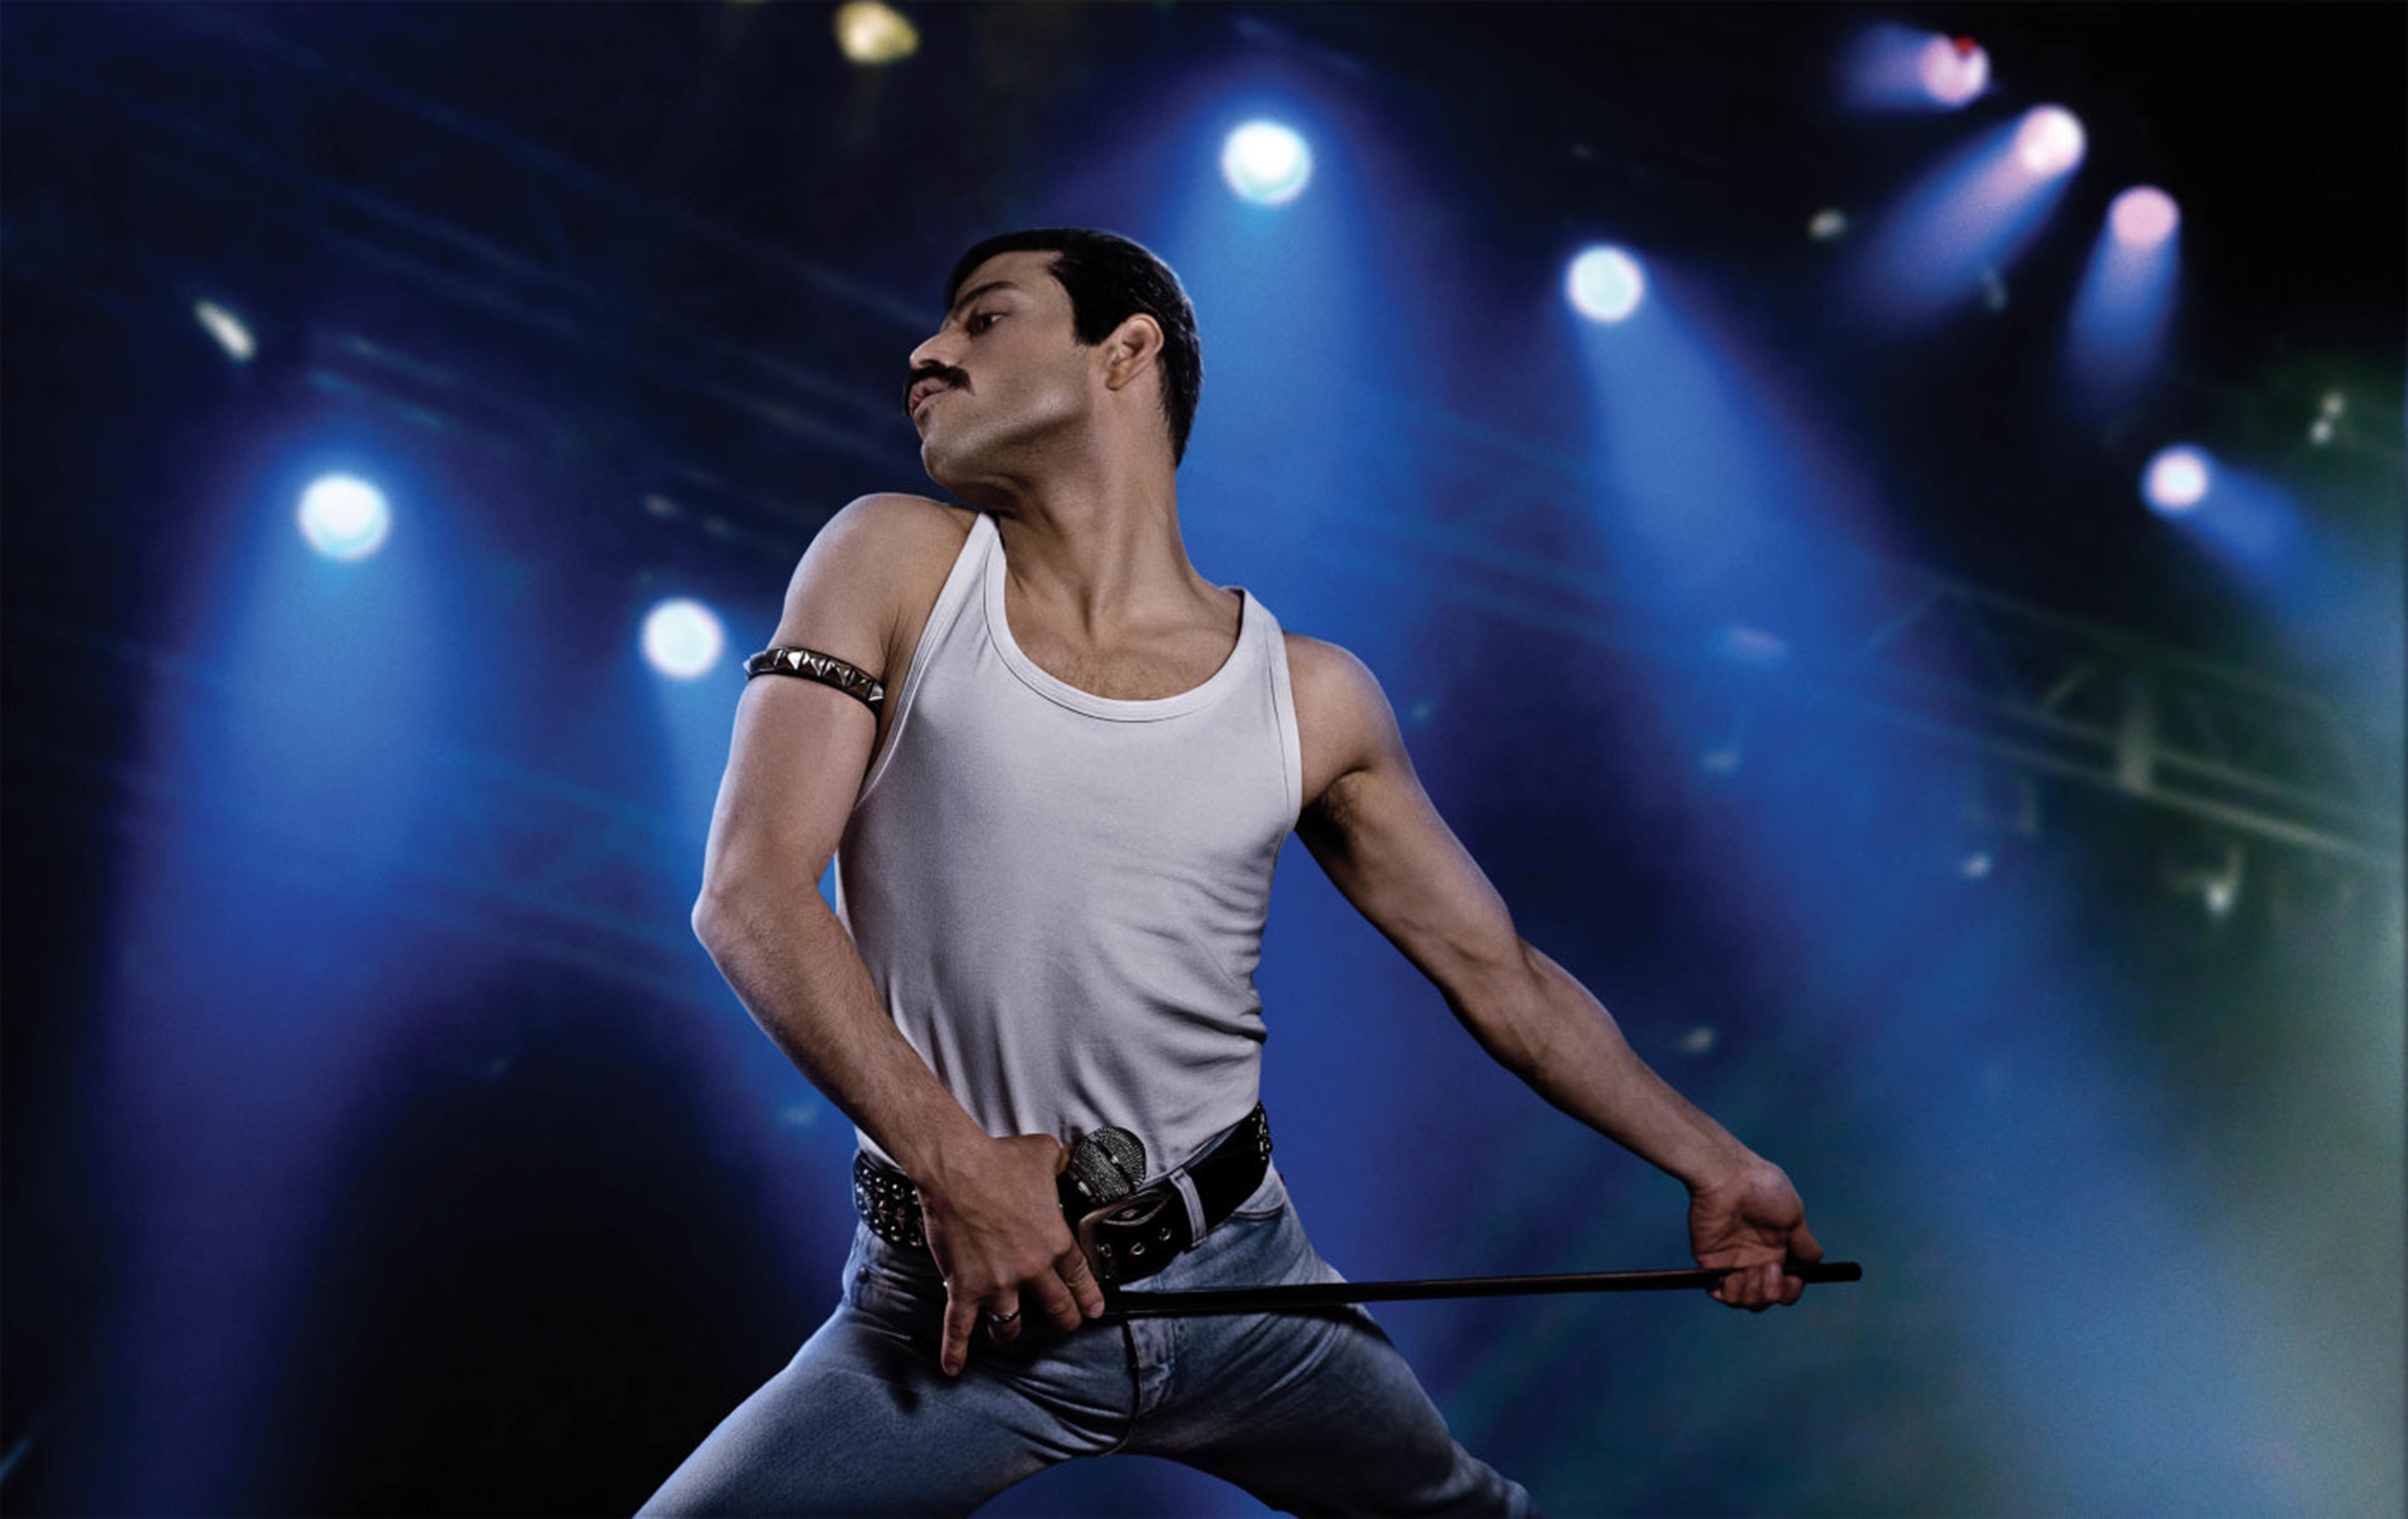 ad9ca9101 Bohemian Rhapsody Merch: Best Fan Merchandise, Gifts and Collectibles –  Rolling Stone